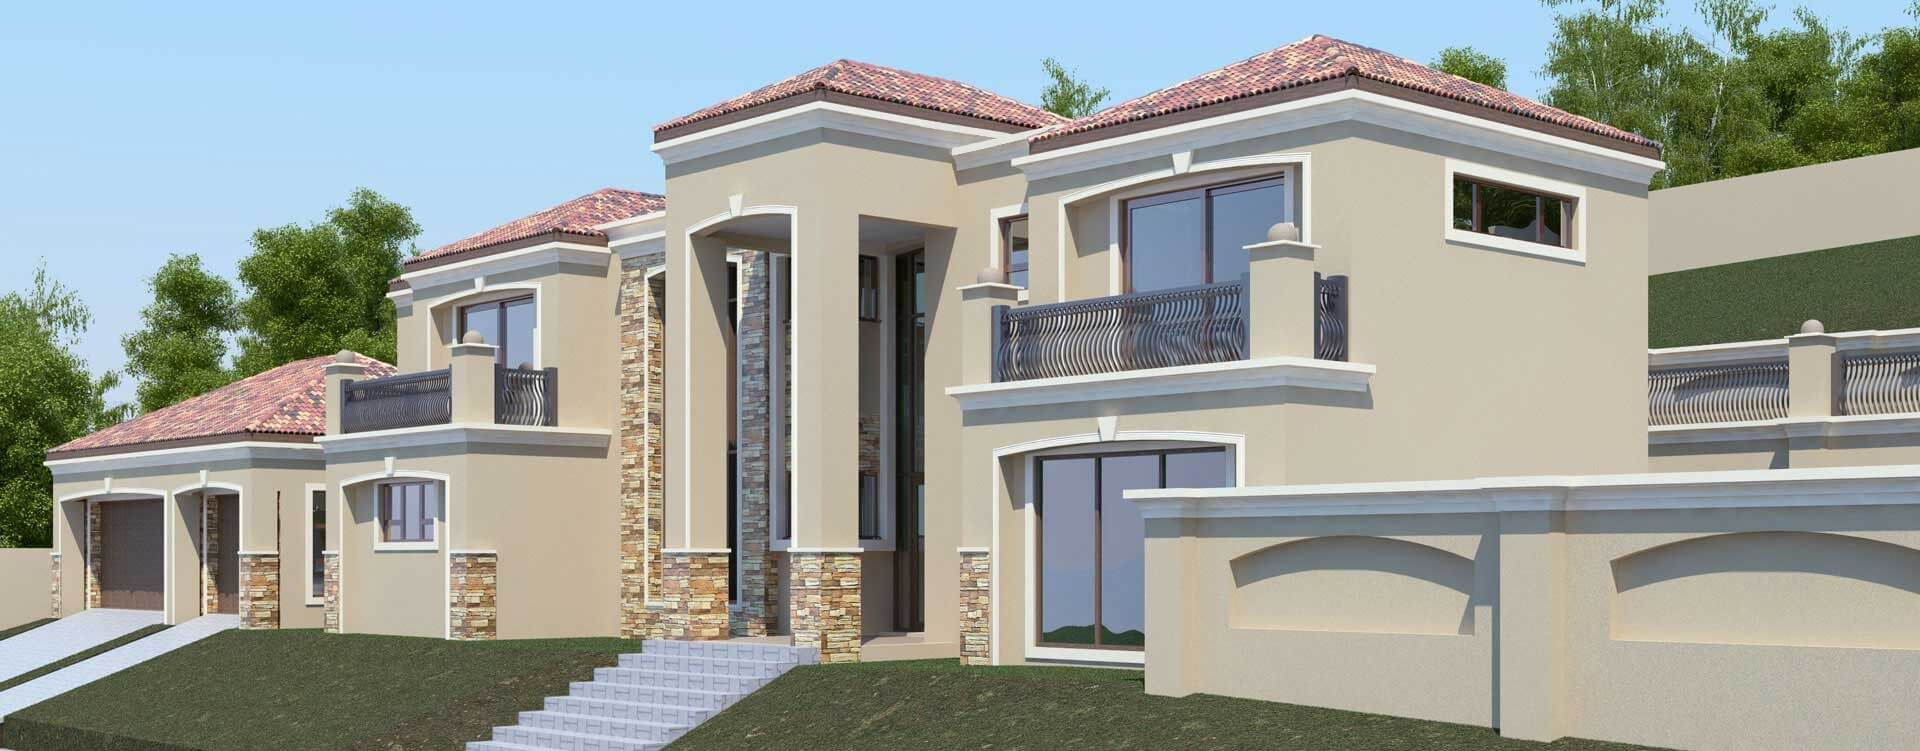 5 Bedroom House Plans 17 Best Images About House Floor Plan Ideas On